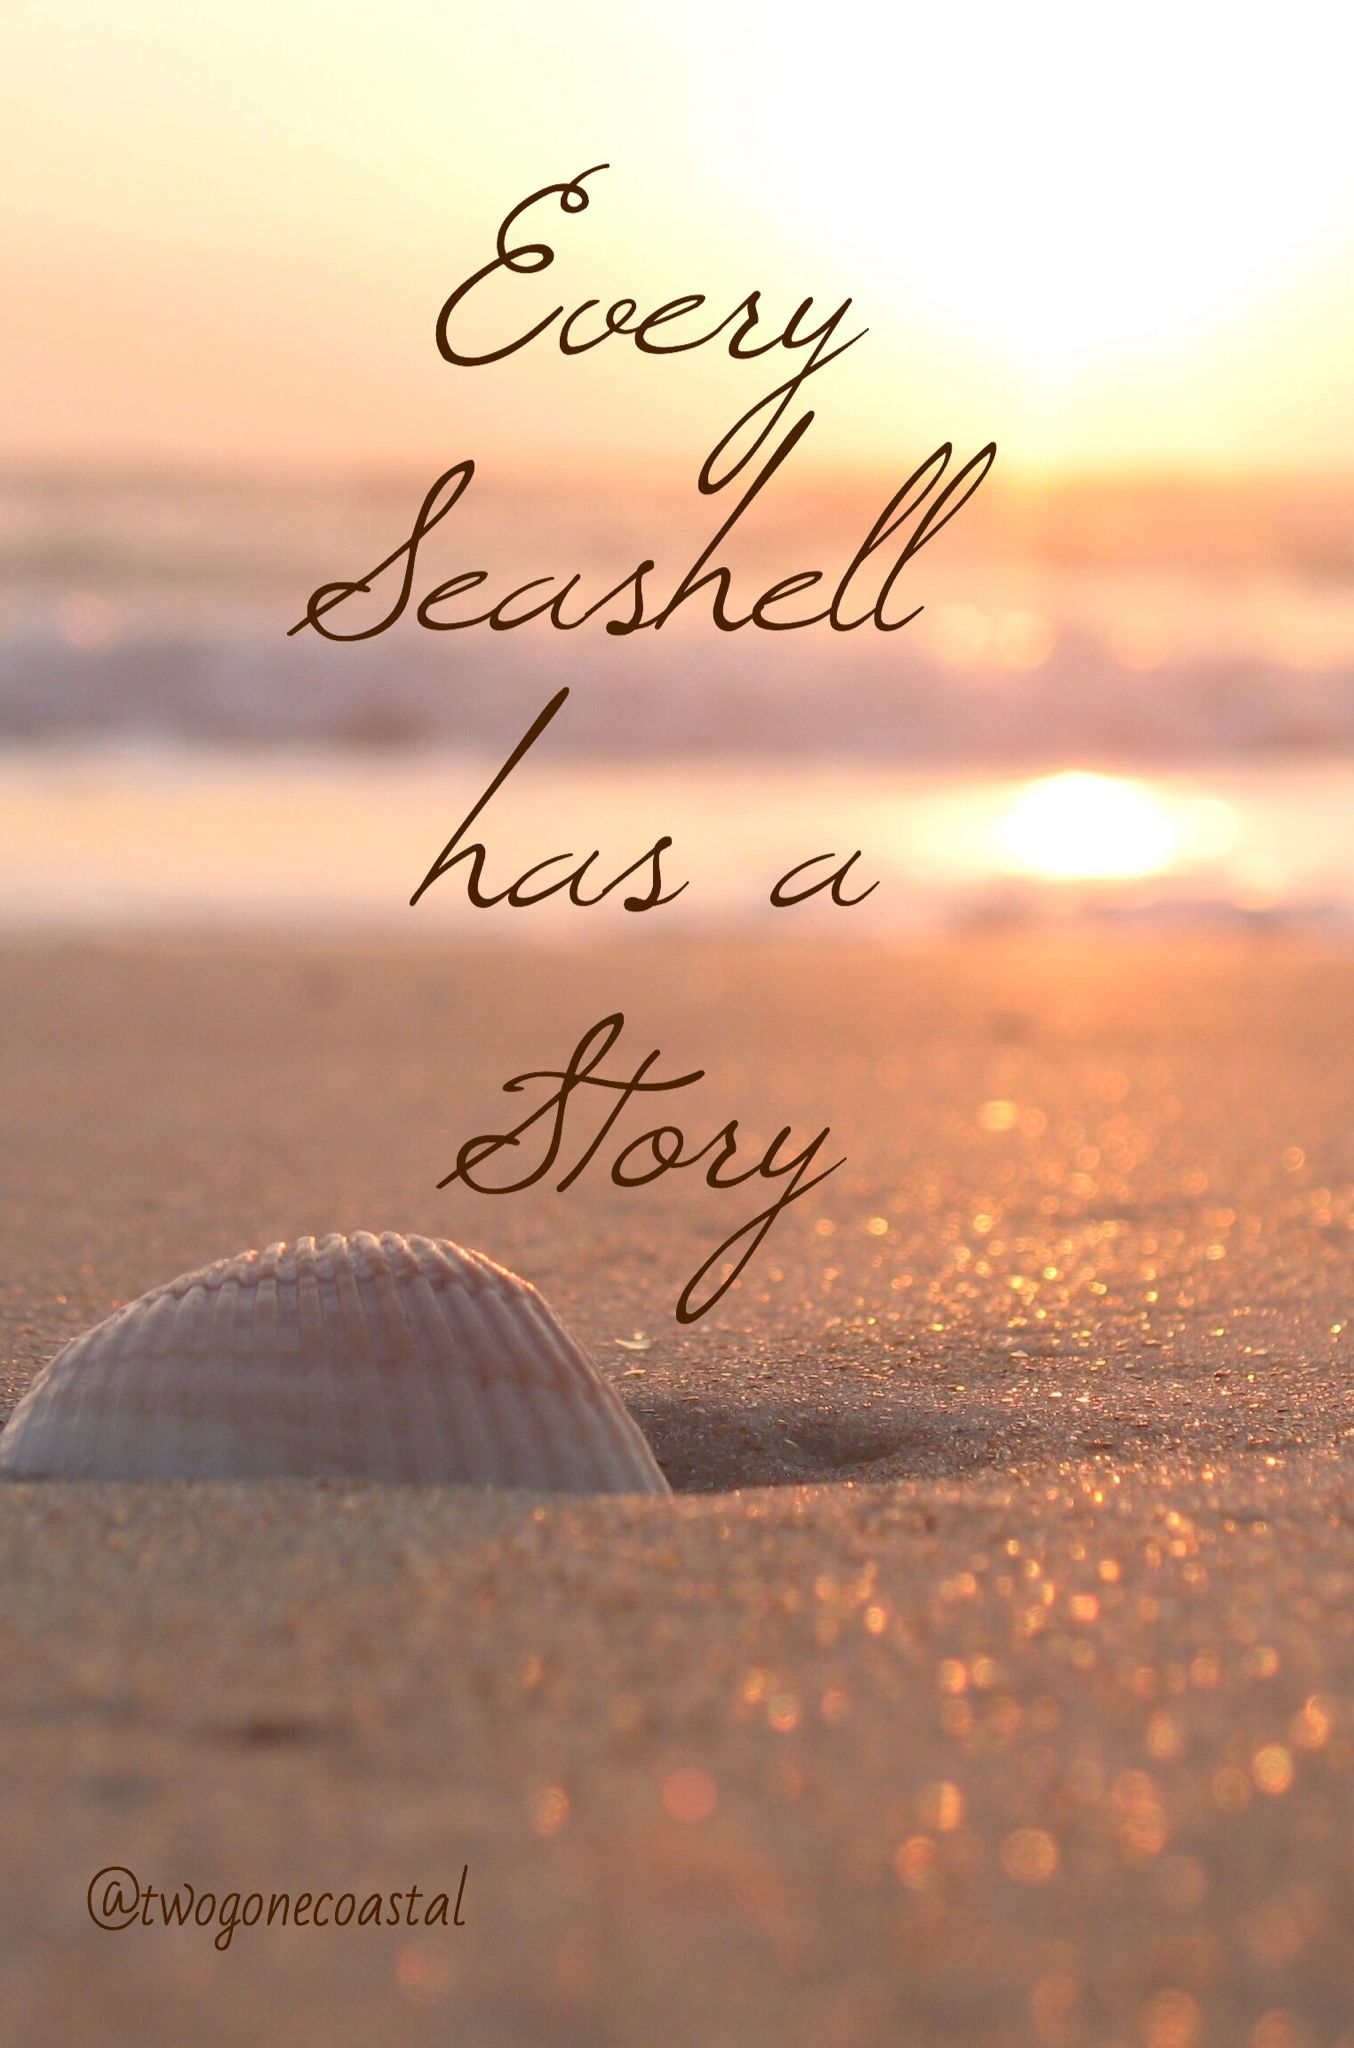 Every Seashell has a Story llect sea shells from every beach Beach Quotes And SayingsBeach